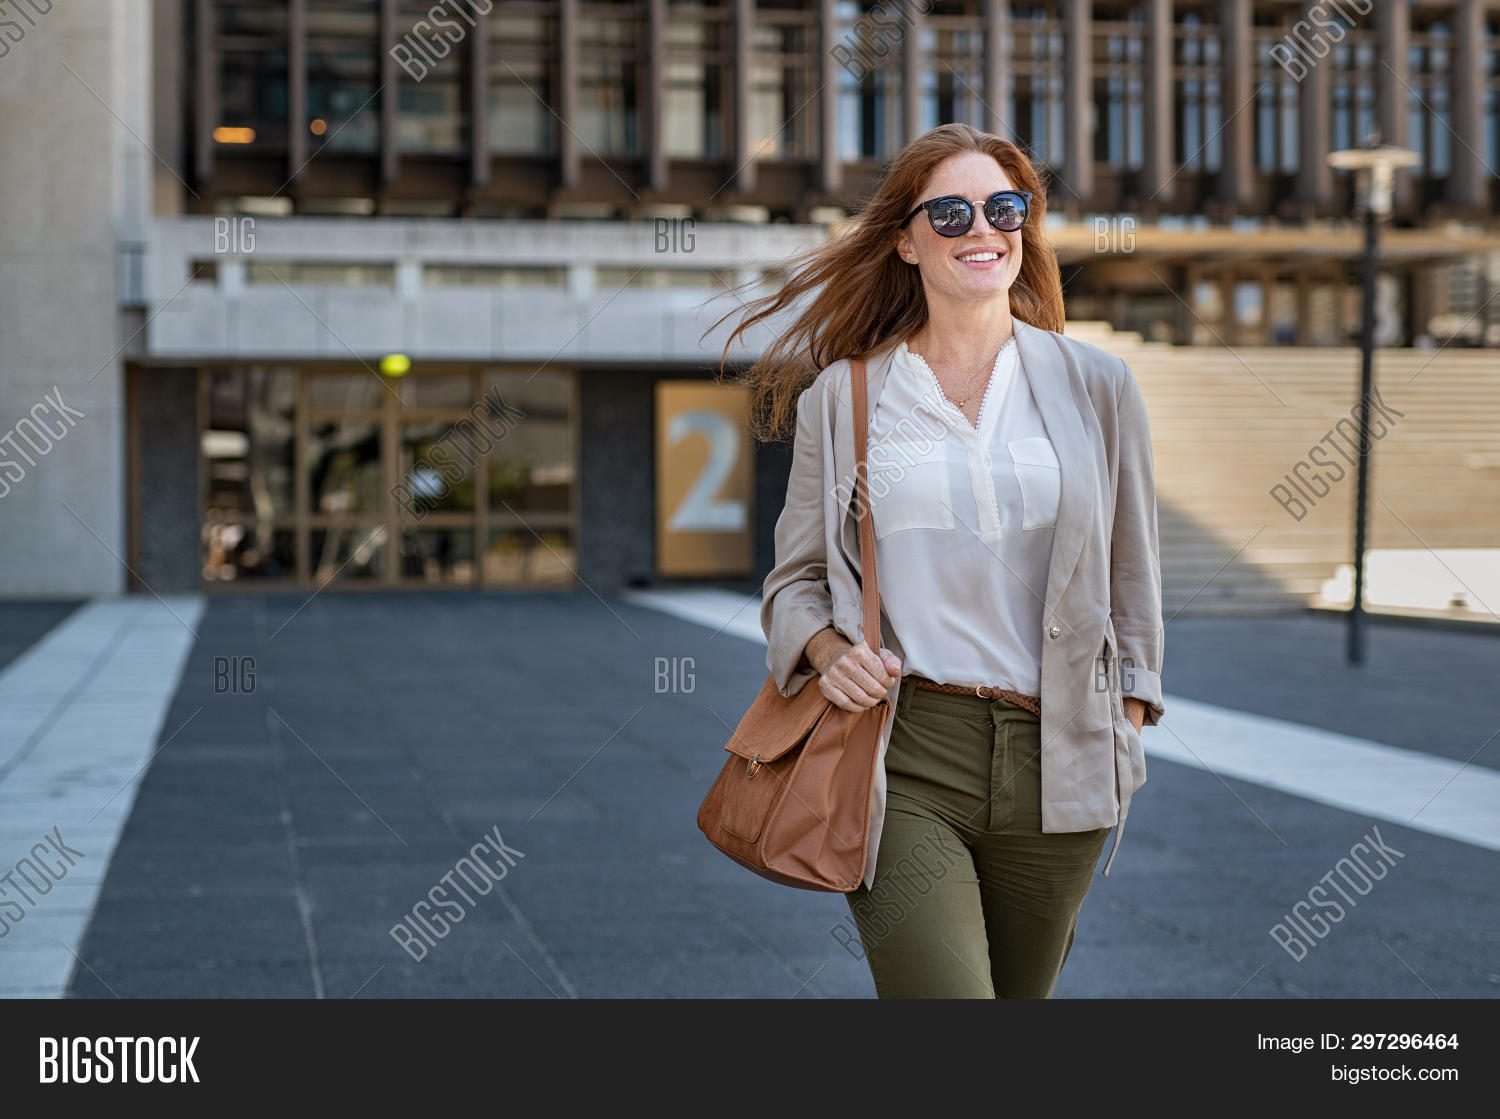 attractive,beautiful,beauty,building,business,business woman,businesswoman,career,carefree,casual,casual woman,cheerful,city,city background,confident,copy space,end work,entrepreneur,fashion,fashionable,free,girl,go to shop,go to work,happy,lifestyle,mature,modern building,office,outdoor,people,positive,proud,red hair,satisfaction,satisfied,serene,smile,street,success,successful,sunglasses,toothy smile,urban,walk,wearing sunglasses,woman walking away,woman walking street,work